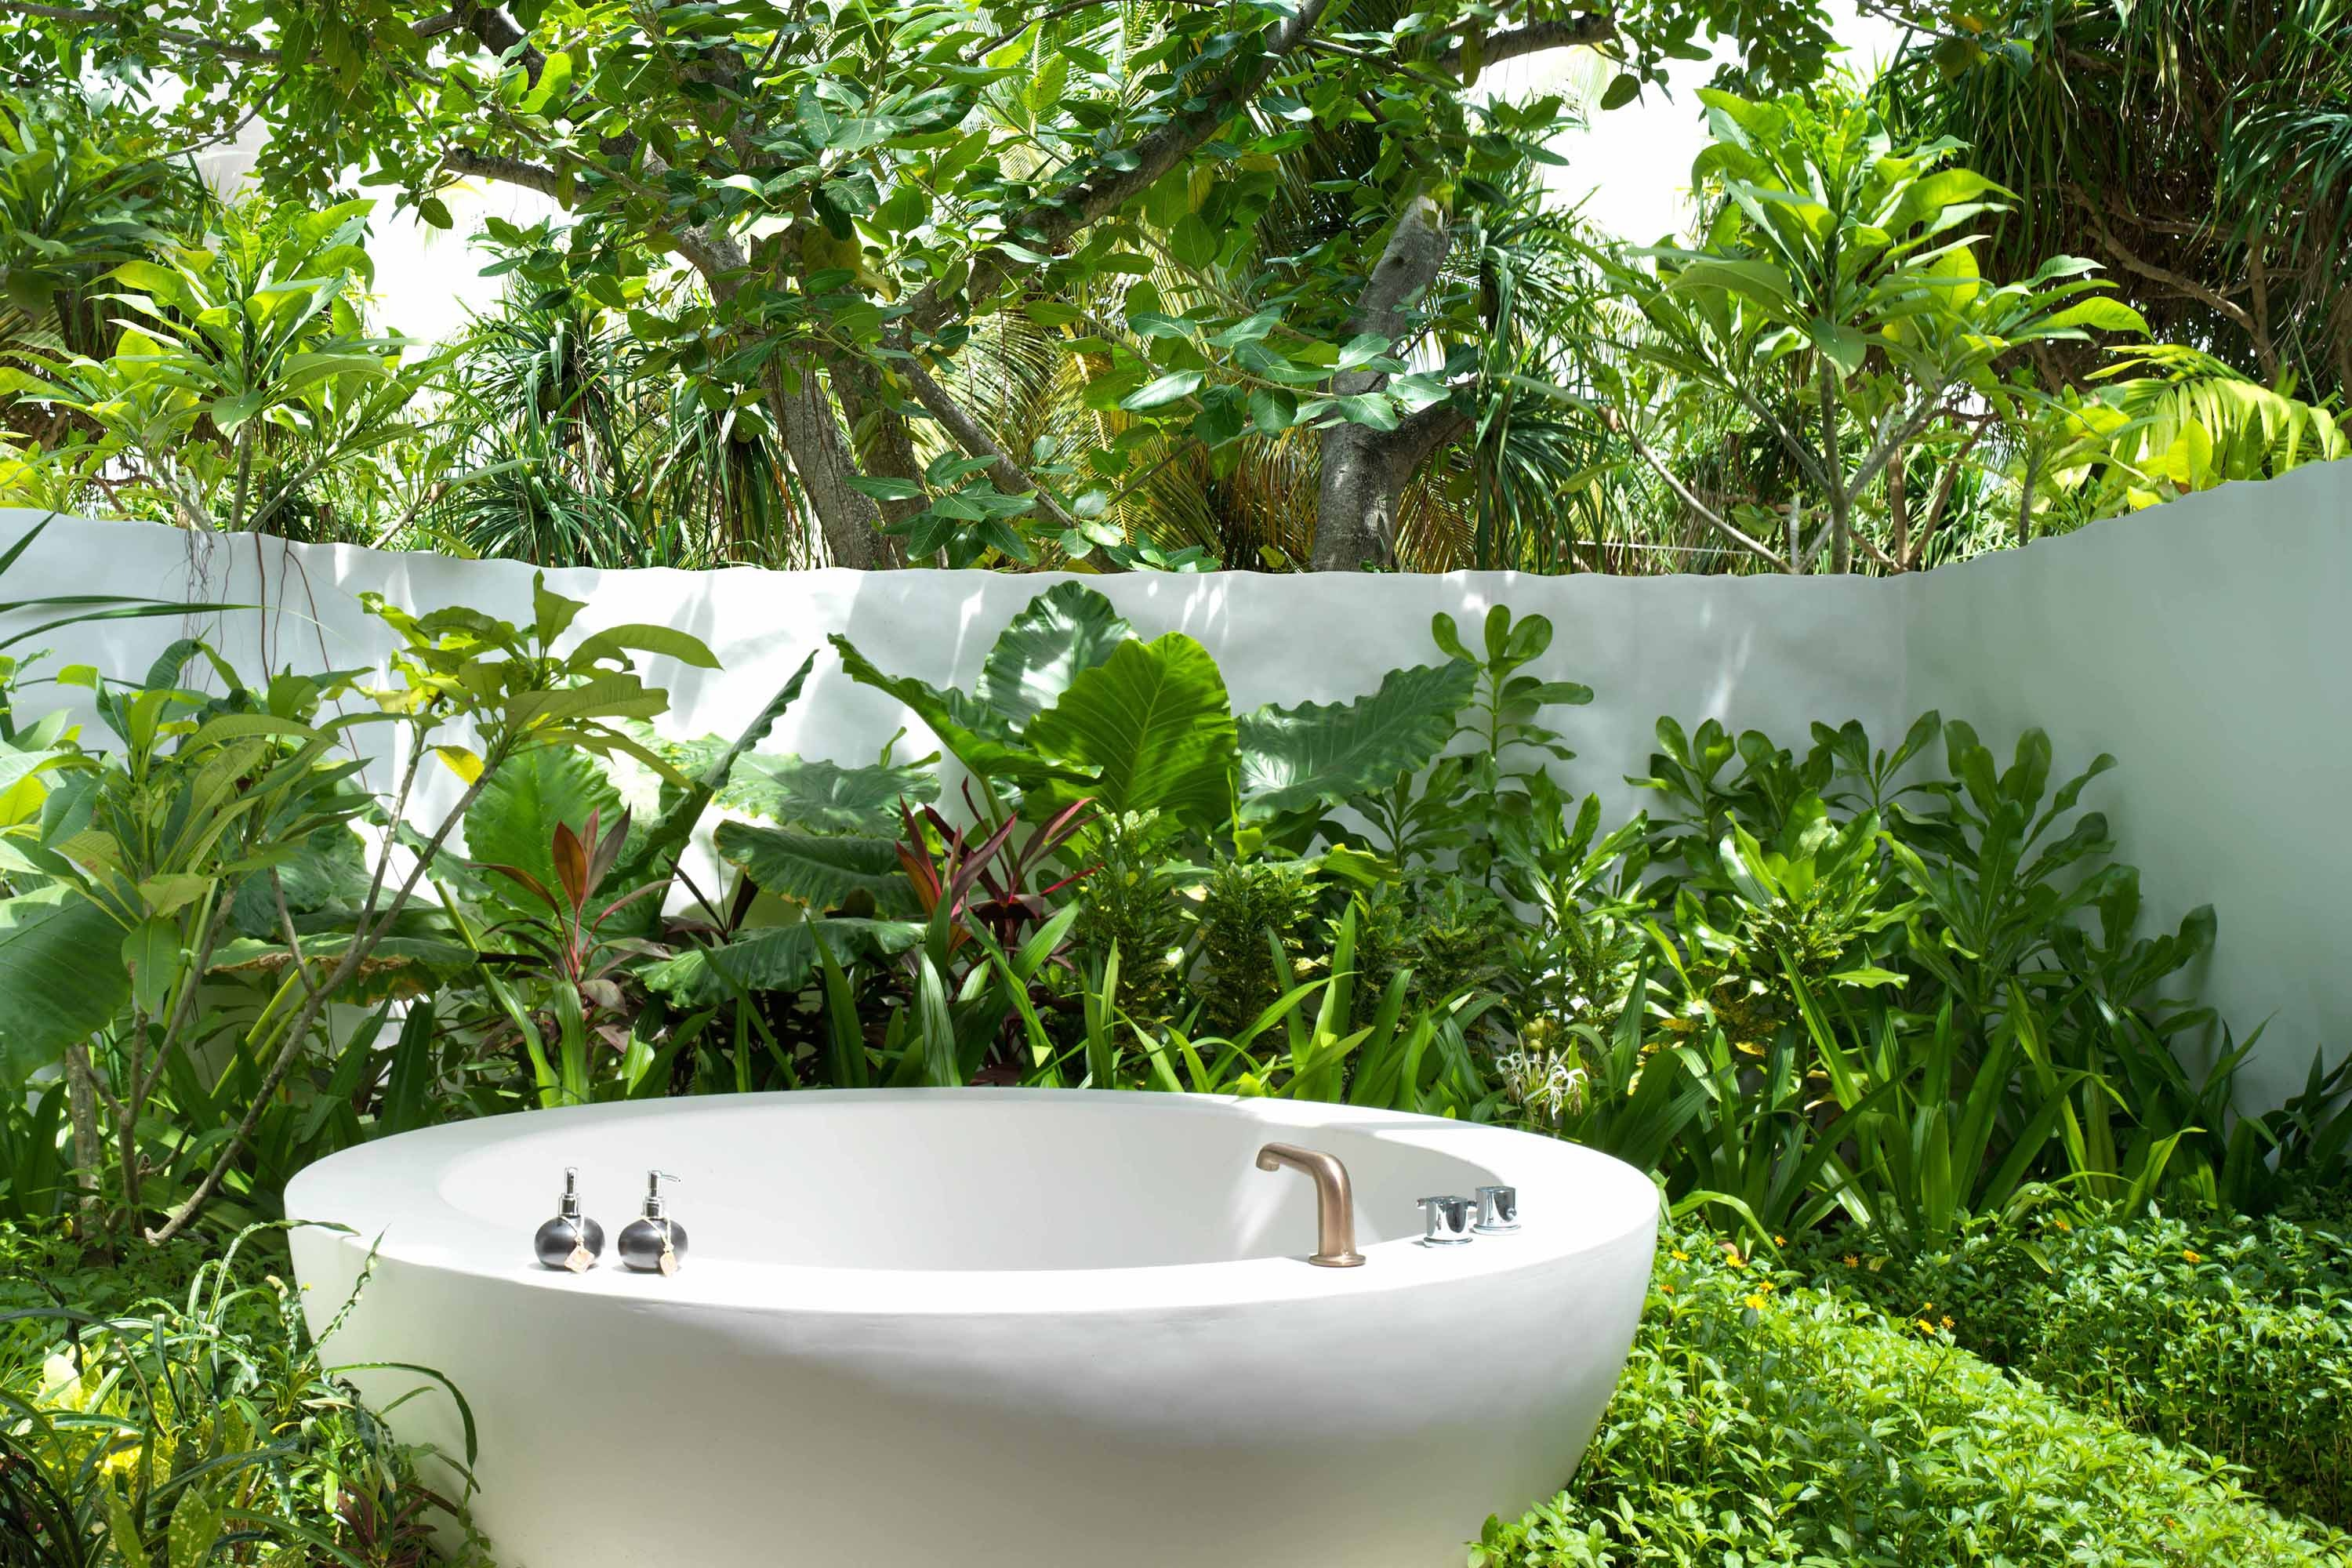 Birdsong serenades guests in the tropical tubs at the Fairmont Maldives.